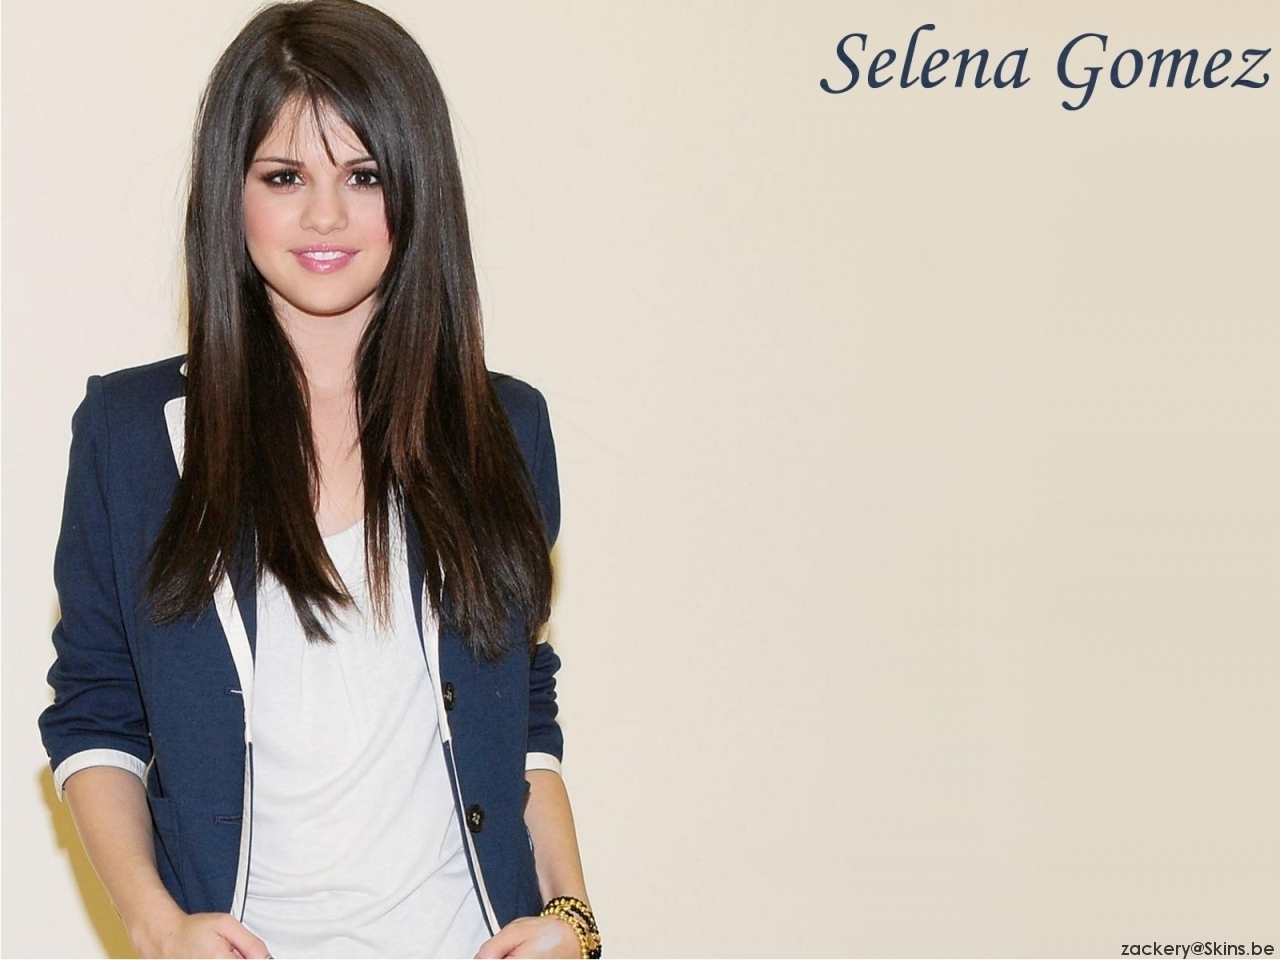 selena gomez ipad wallpaper - photo #9